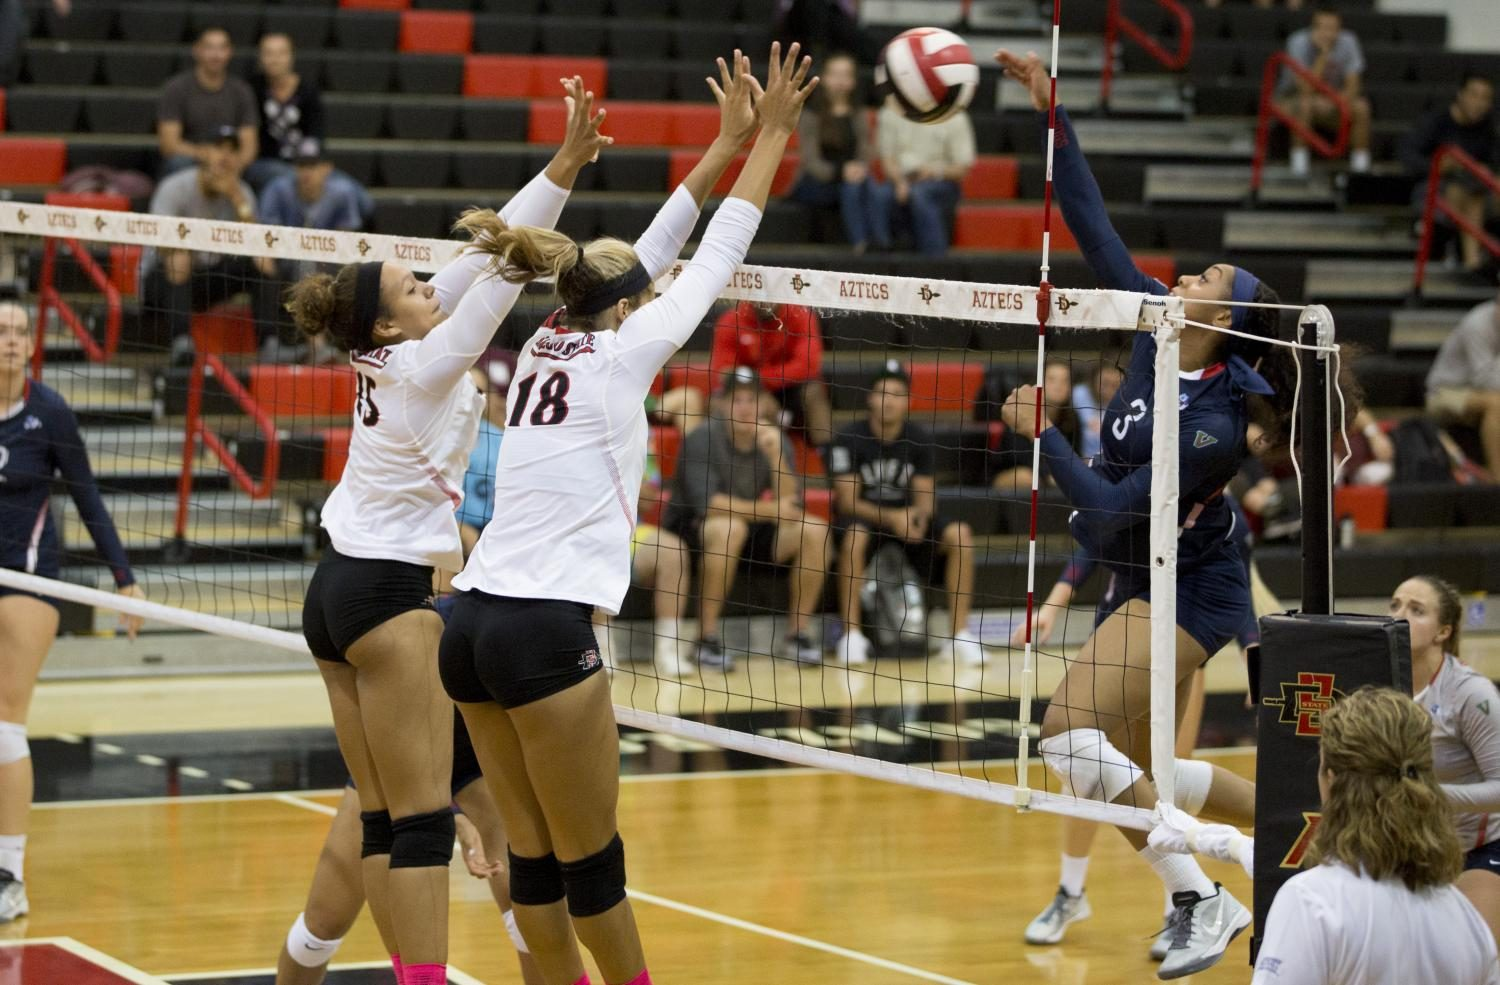 Senior outside hitter Alexis Cage (18) and junior middle blocker Deja Harris (15) go up for blocks during a match in 2016.